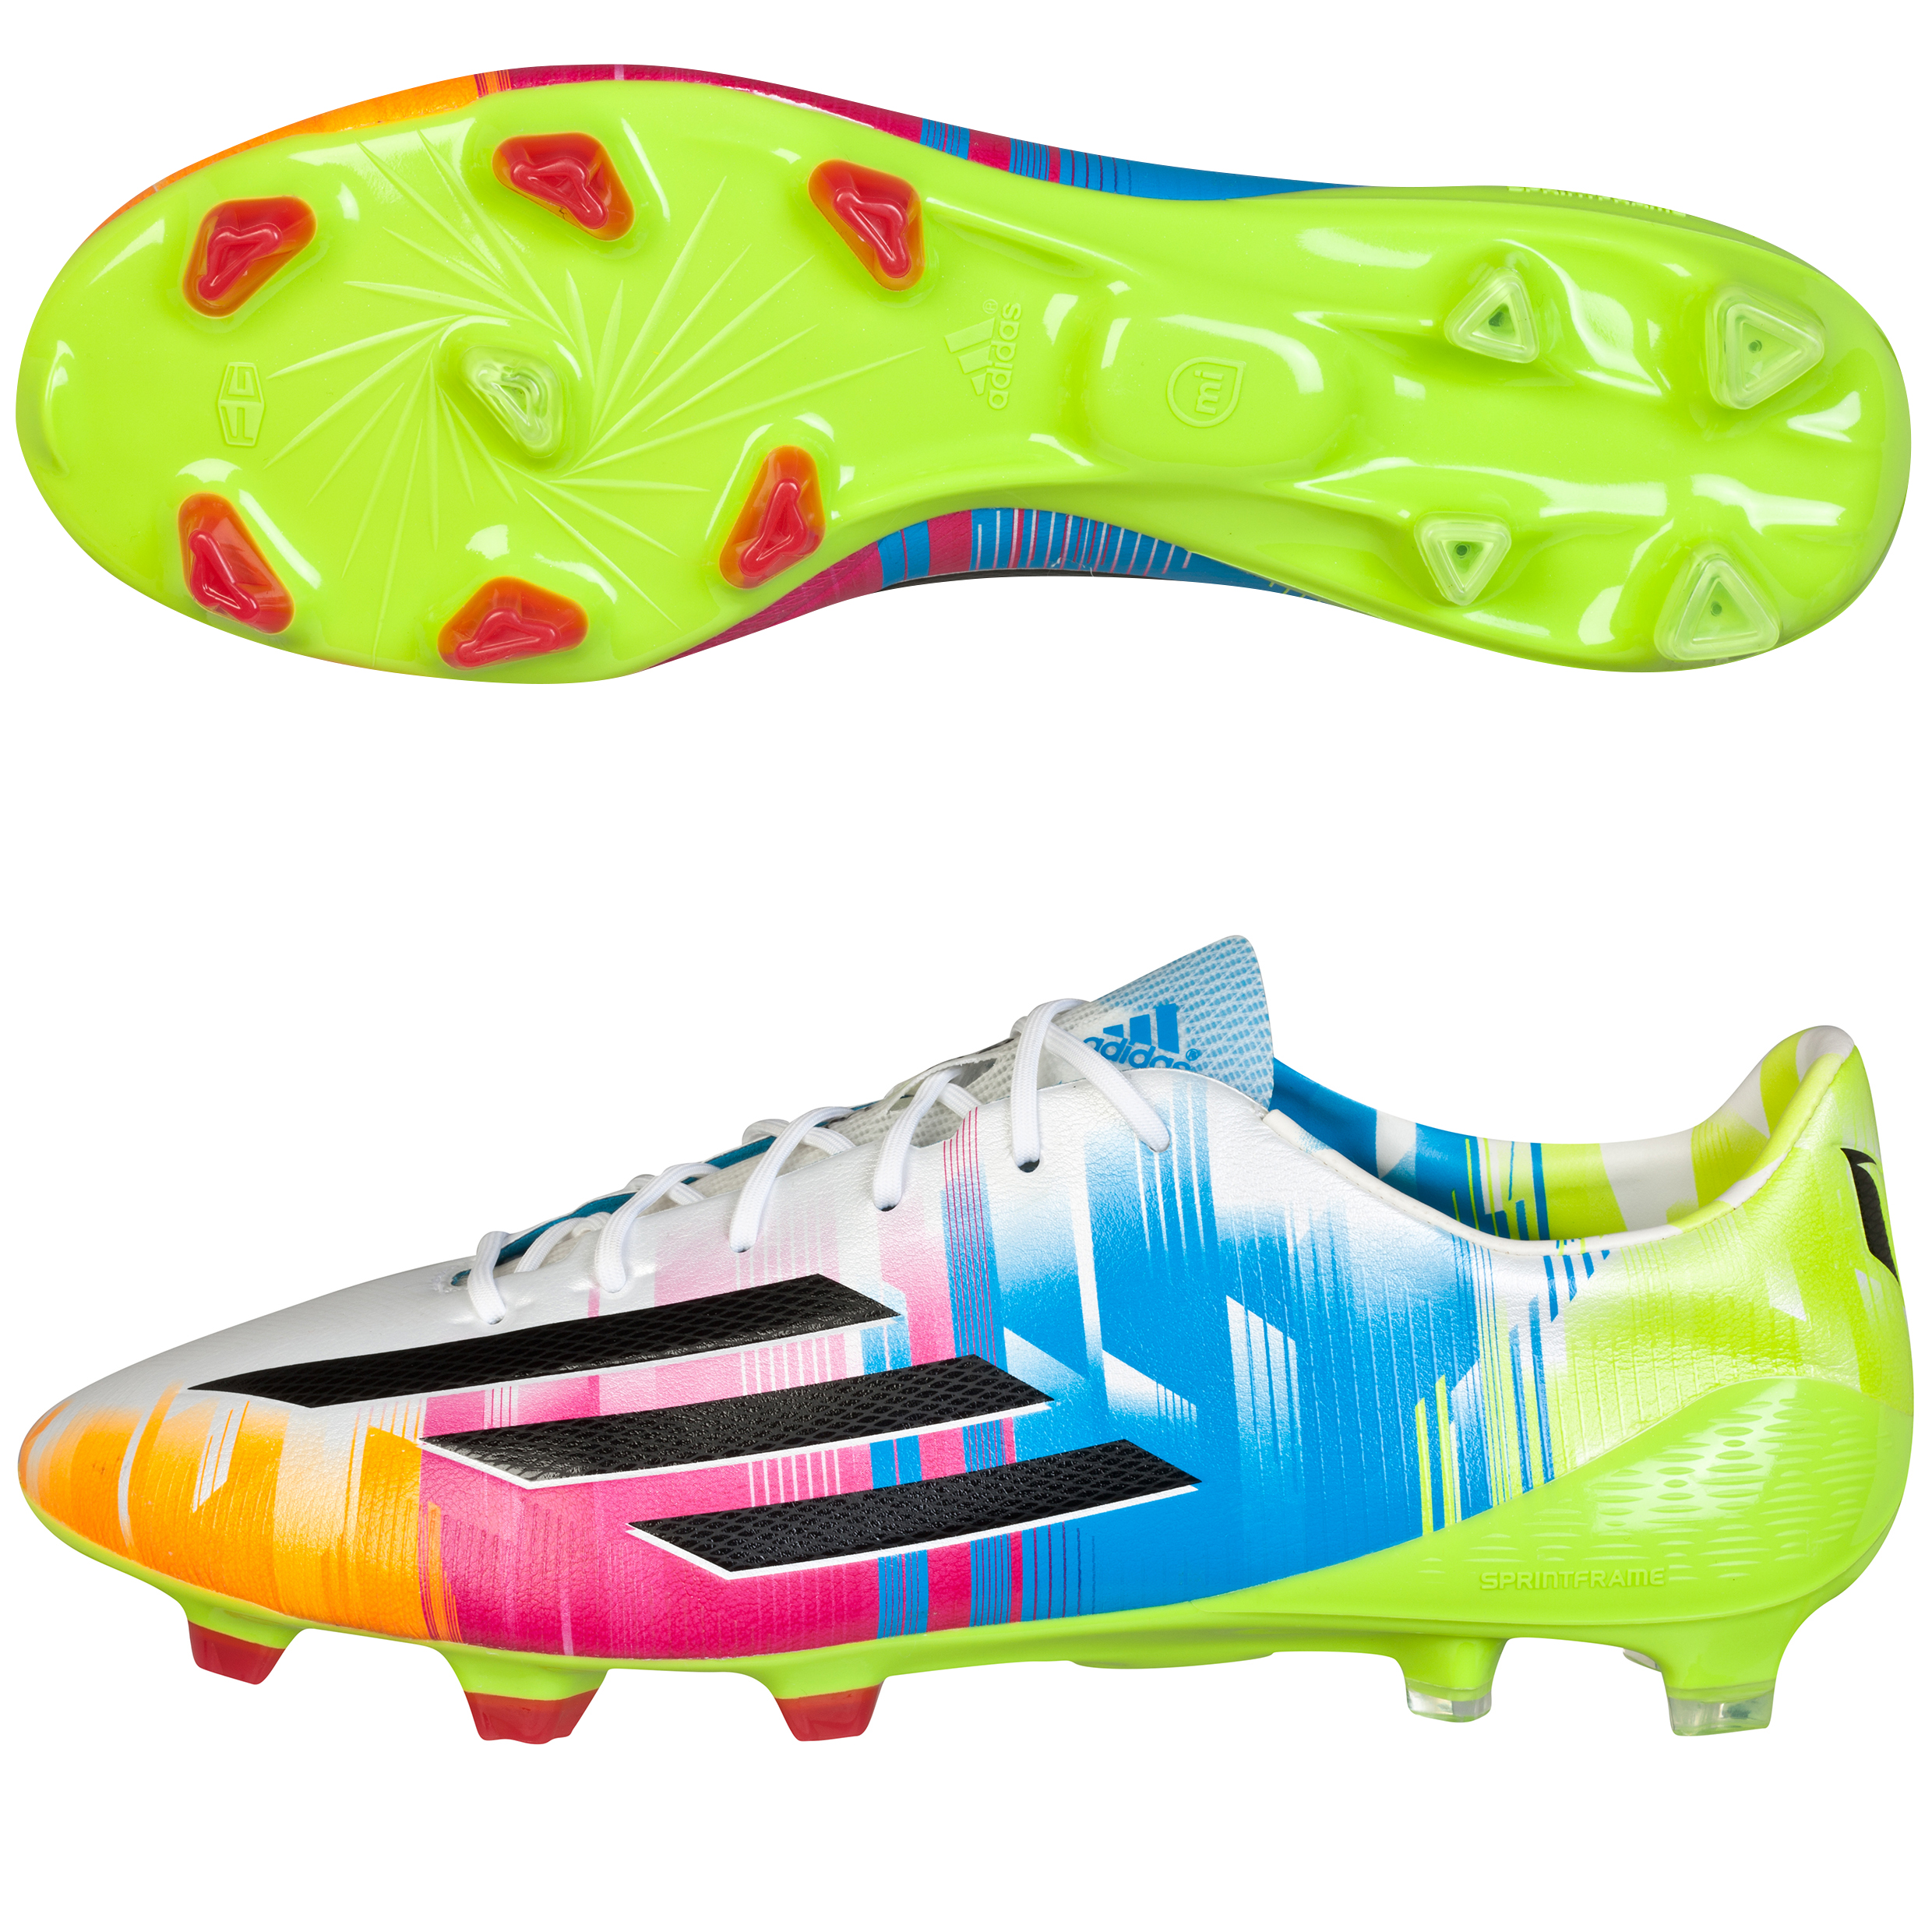 Adidas F50 adiZero Messi TRX Firm Ground White